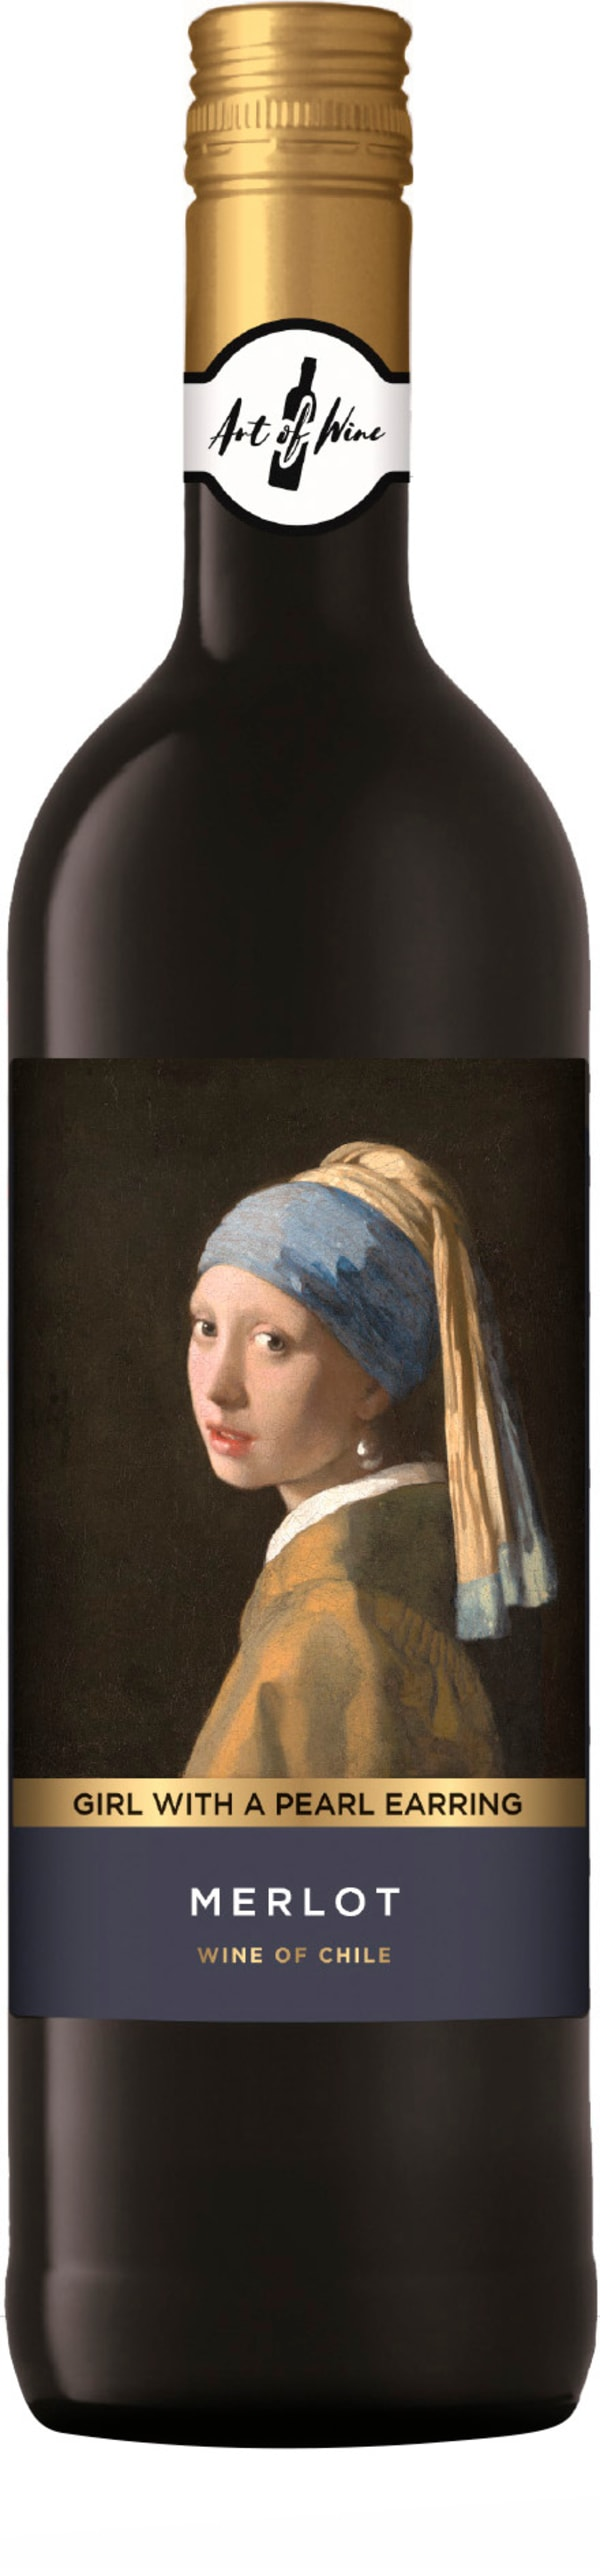 Girl With A Pearl Earring Merlot 2017